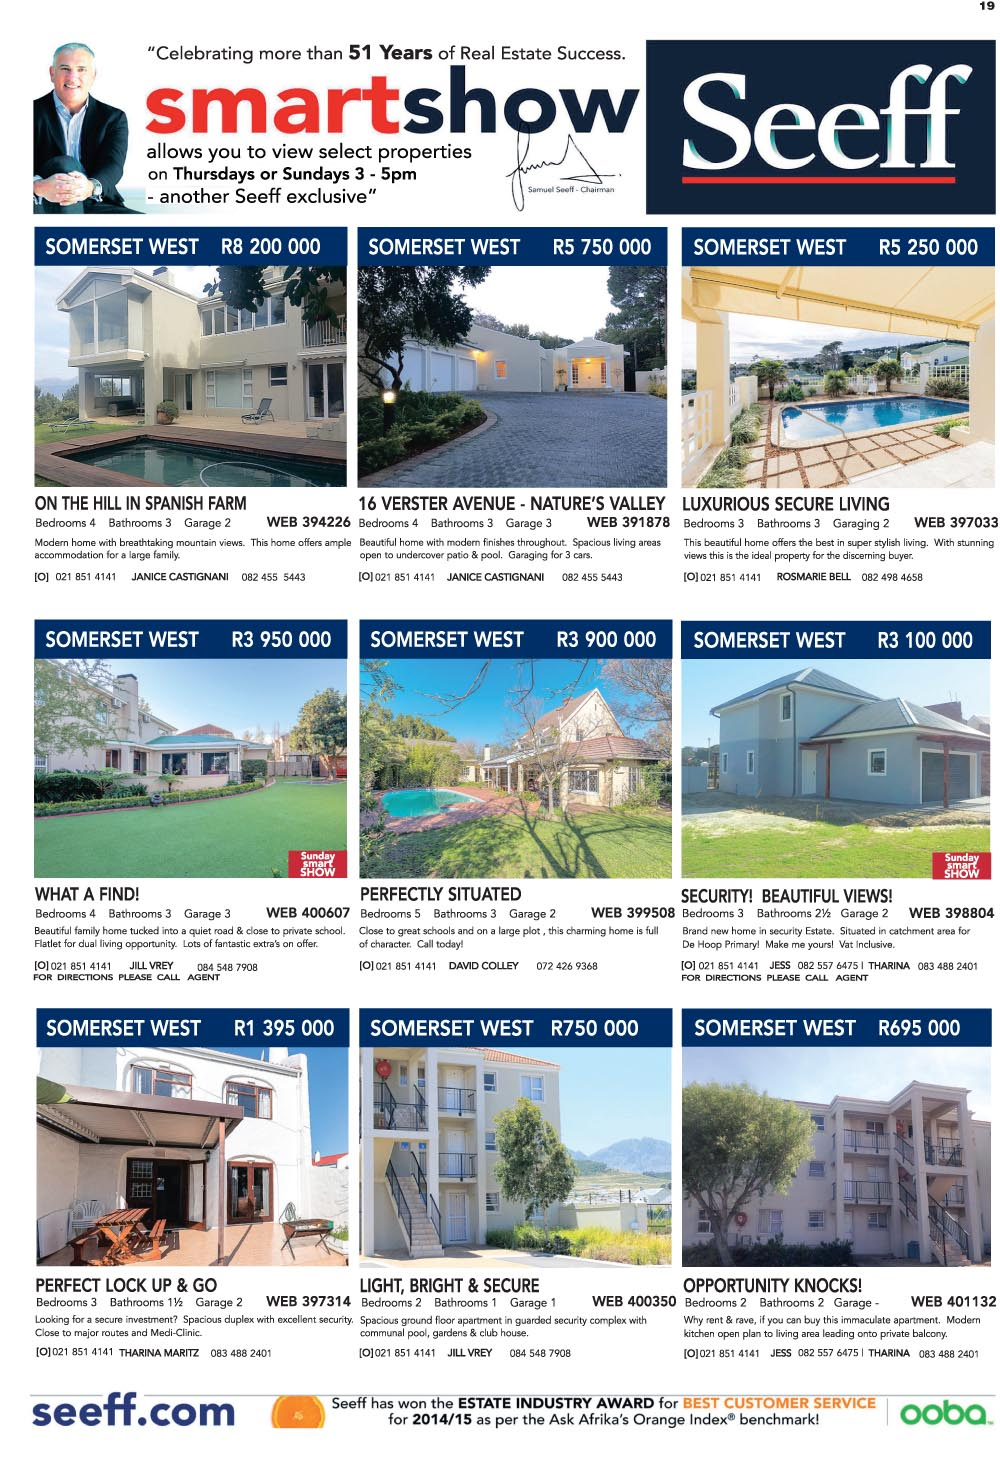 You are browsing images from the article: Property Selection 31st August 2016